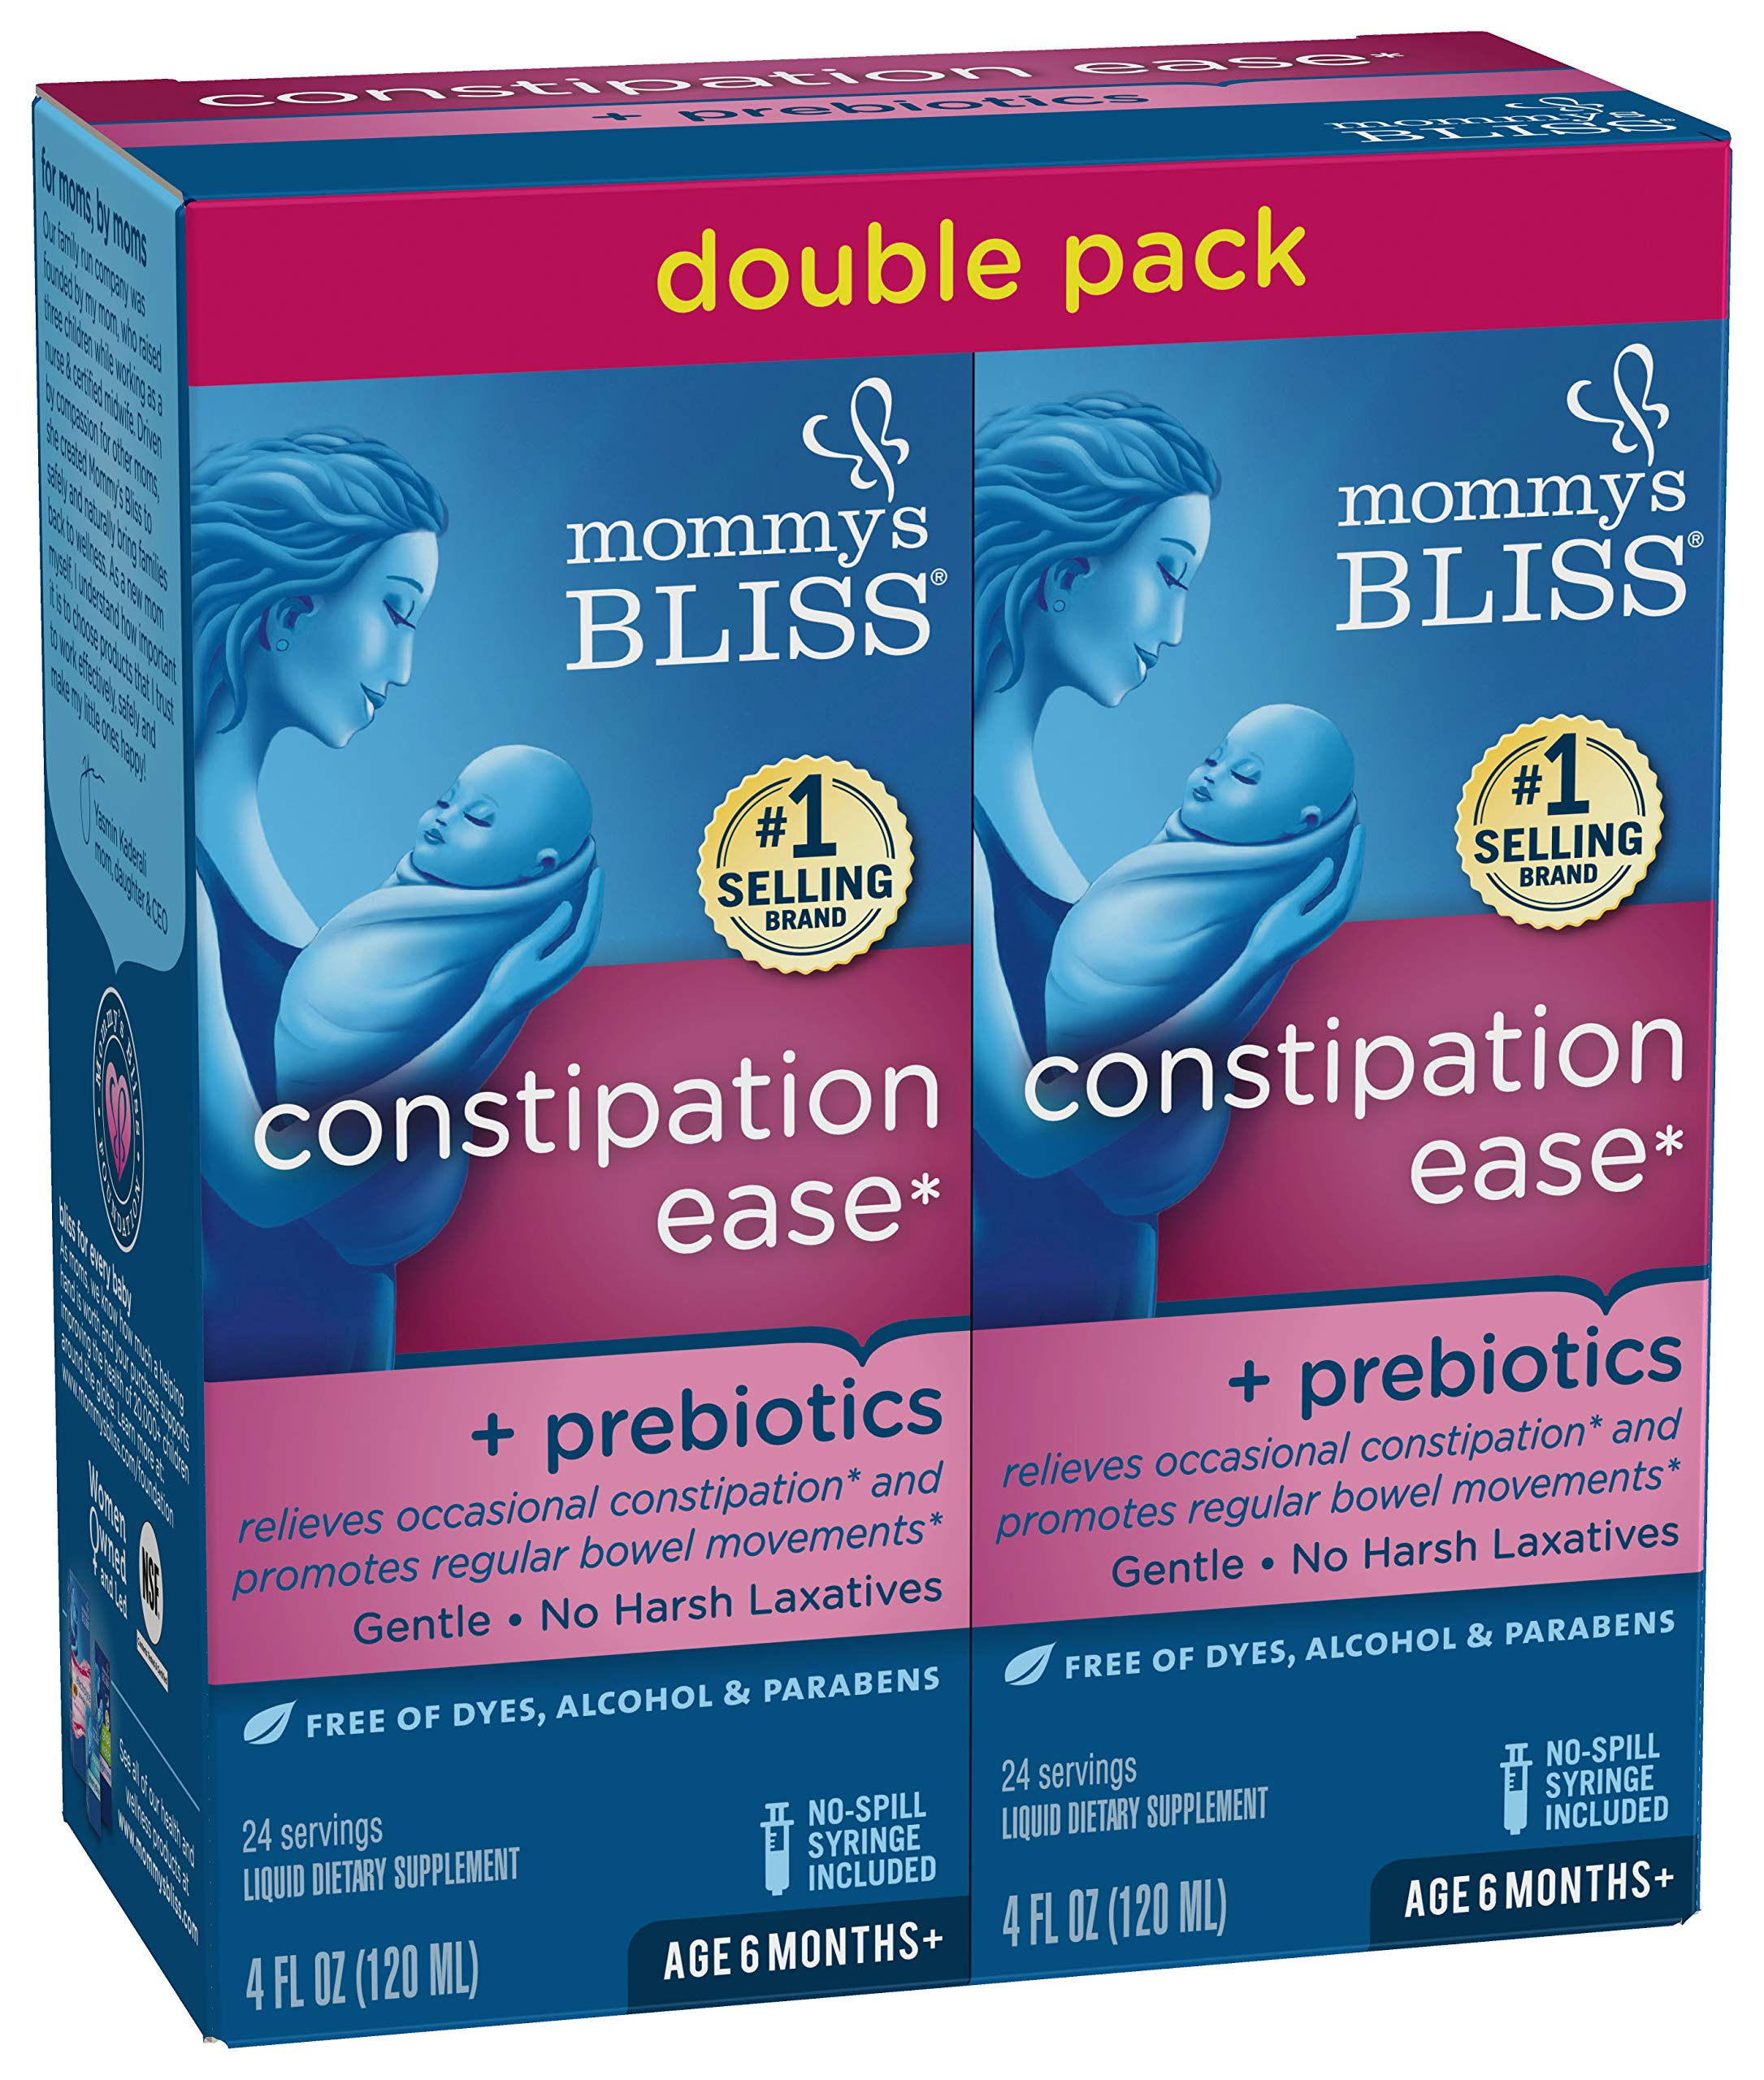 Mommy's Bliss Constipation Ease + Prebiotics, 4 Ounce Bottle (Pack of 2) by Mommy's Bliss